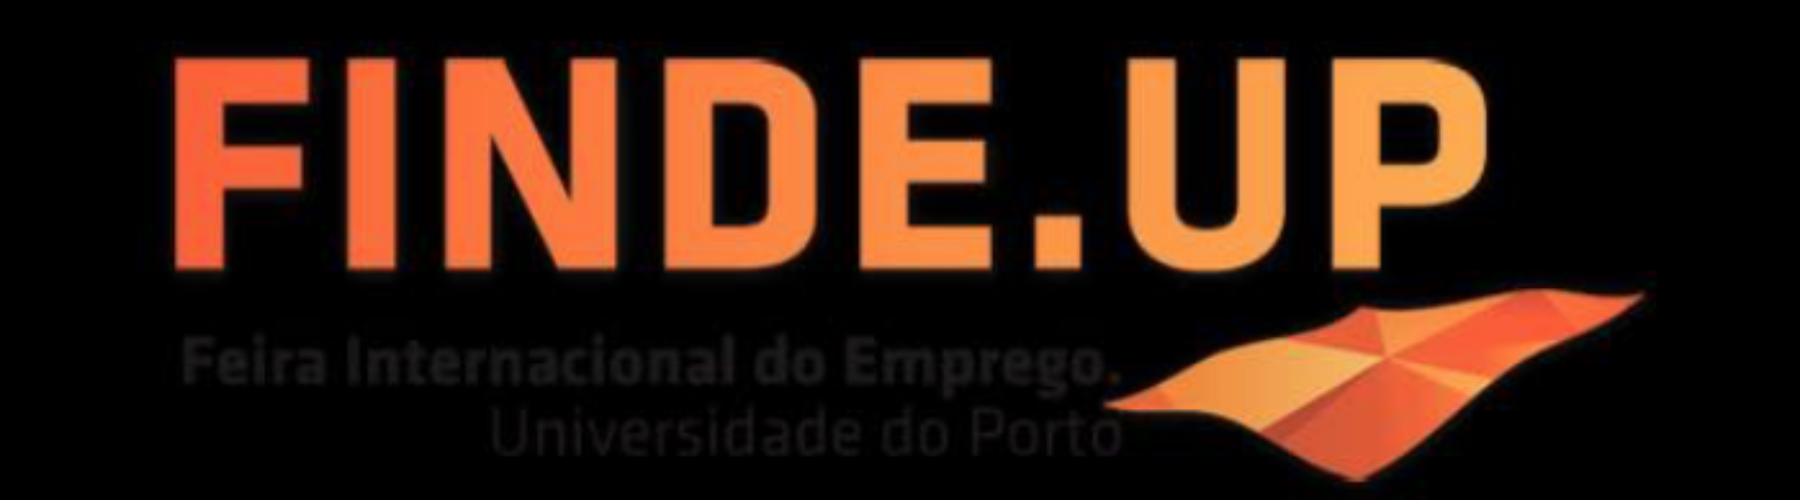 FINDE.UP | Feira Internacional do Emprego da U.Porto